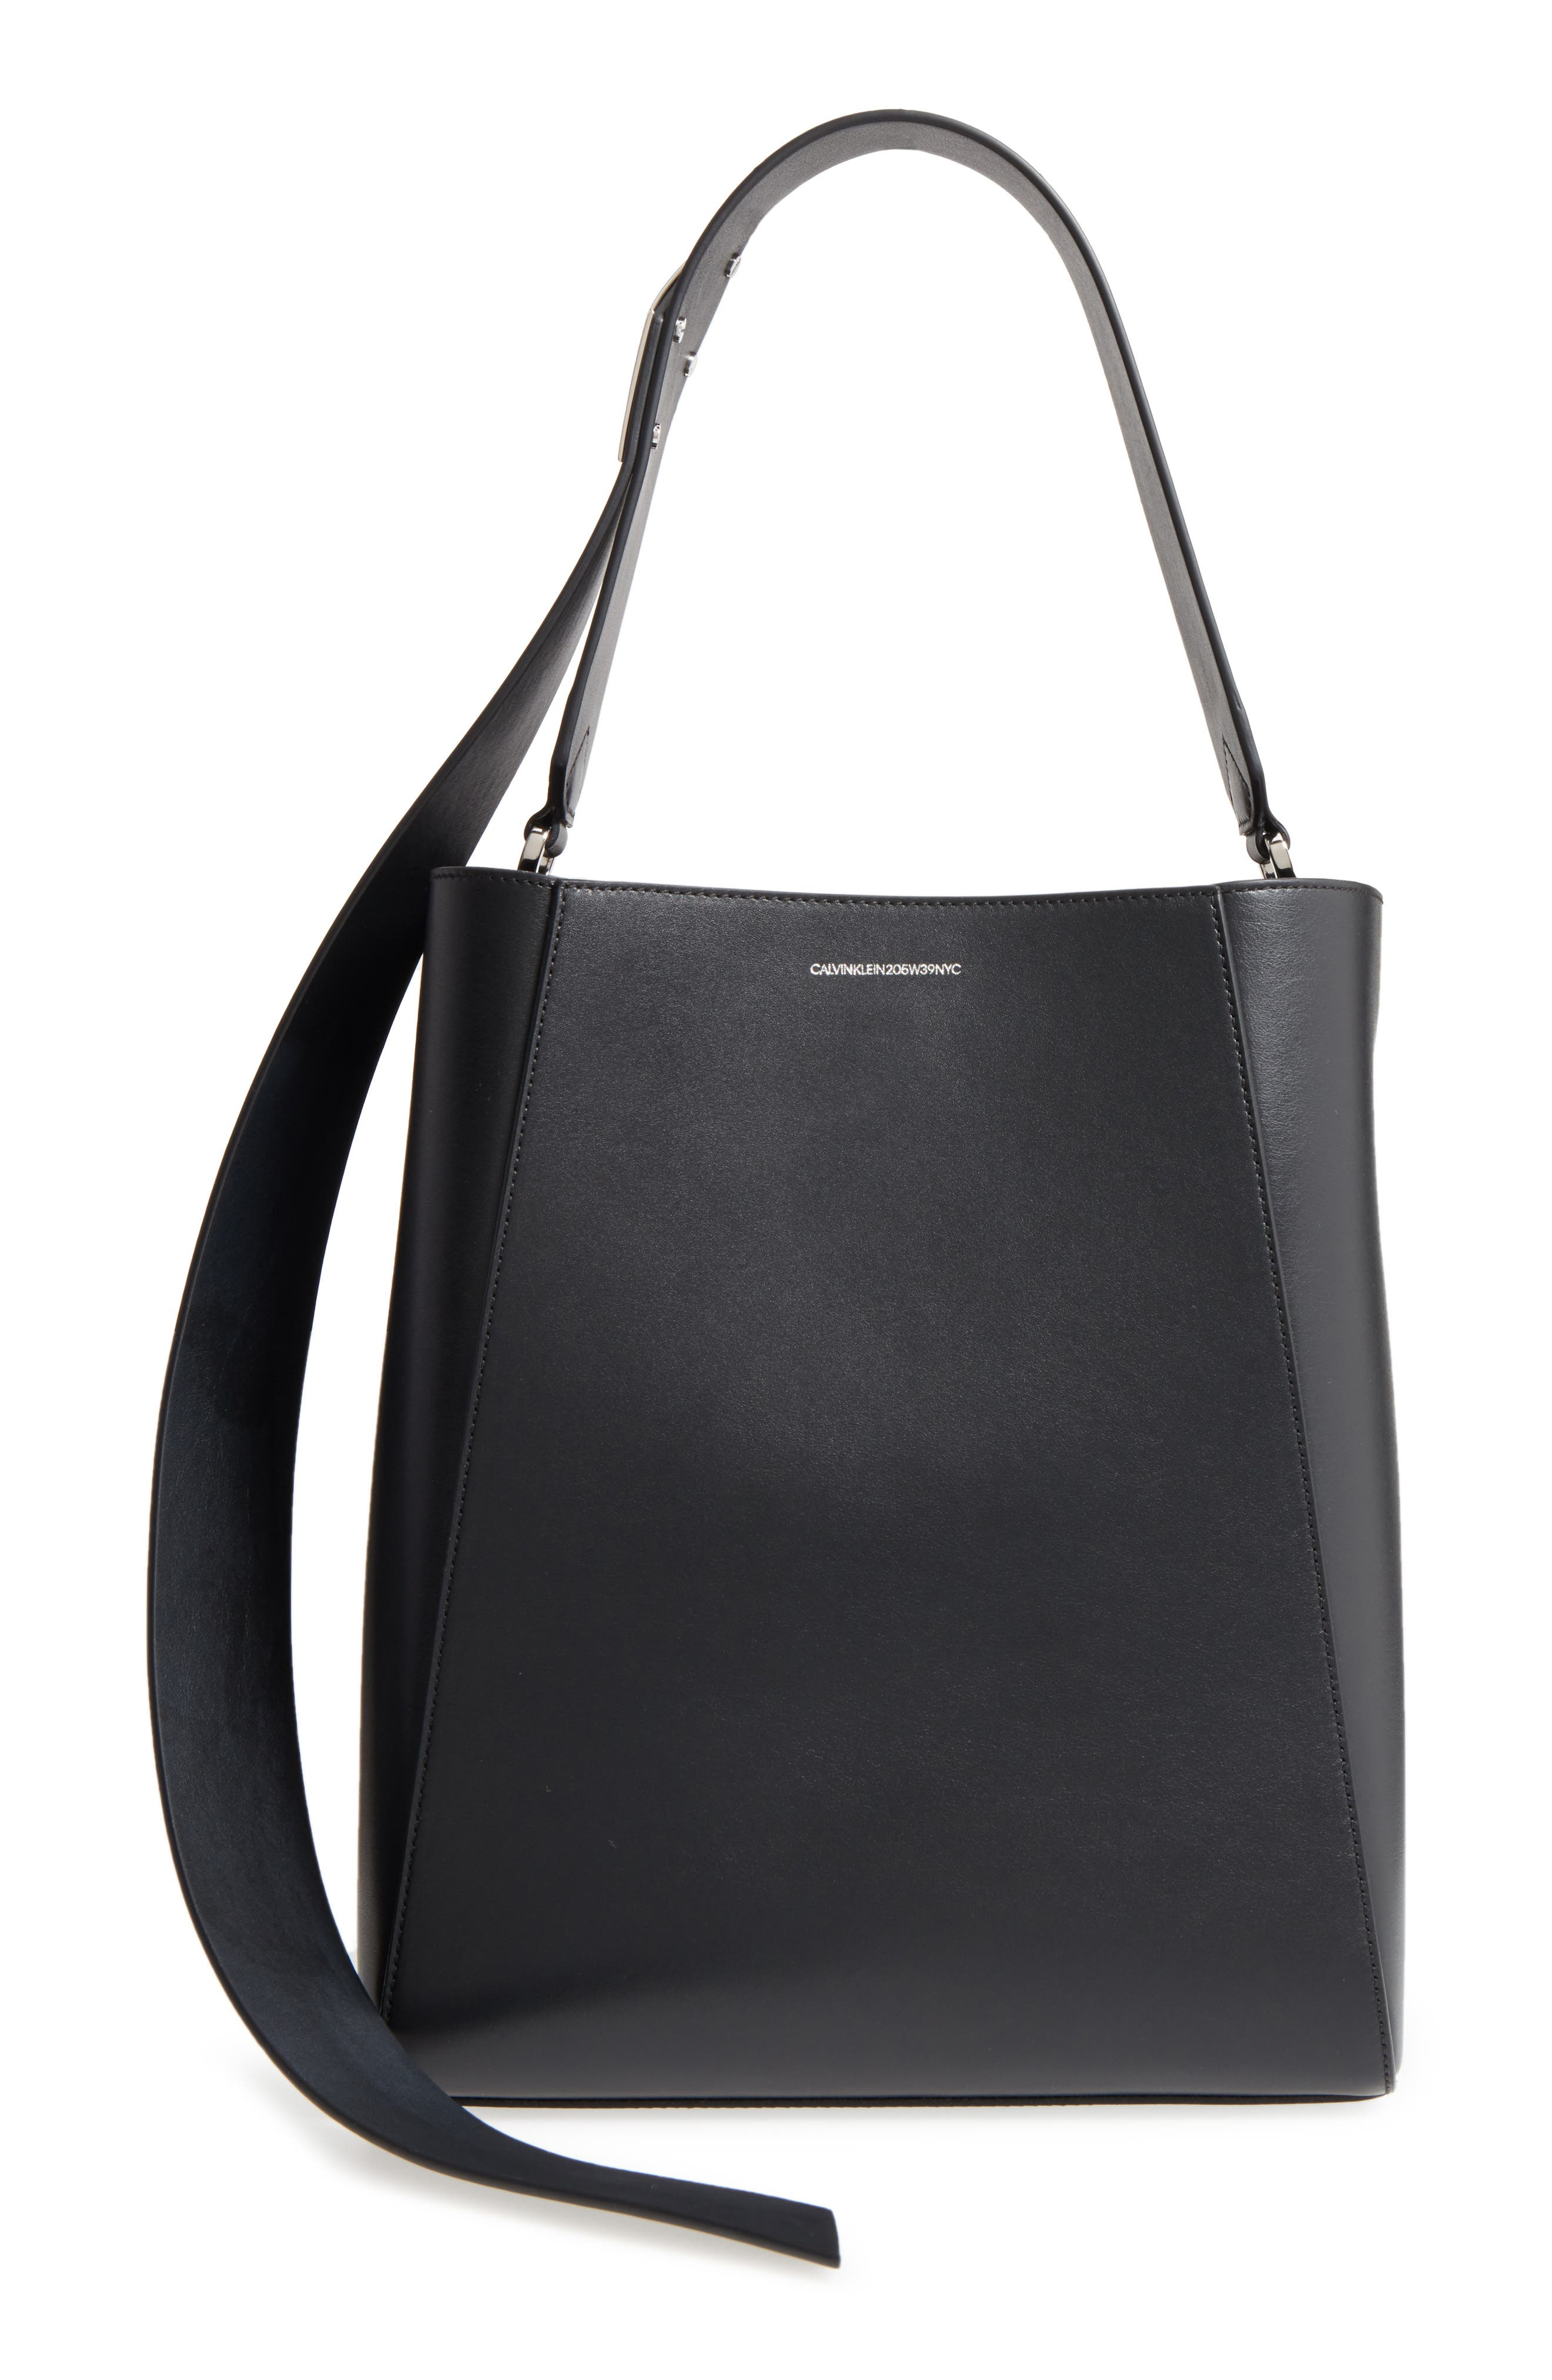 Medium Calfskin Leather Bucket Bag with Removable Pouch,                             Main thumbnail 1, color,                             001